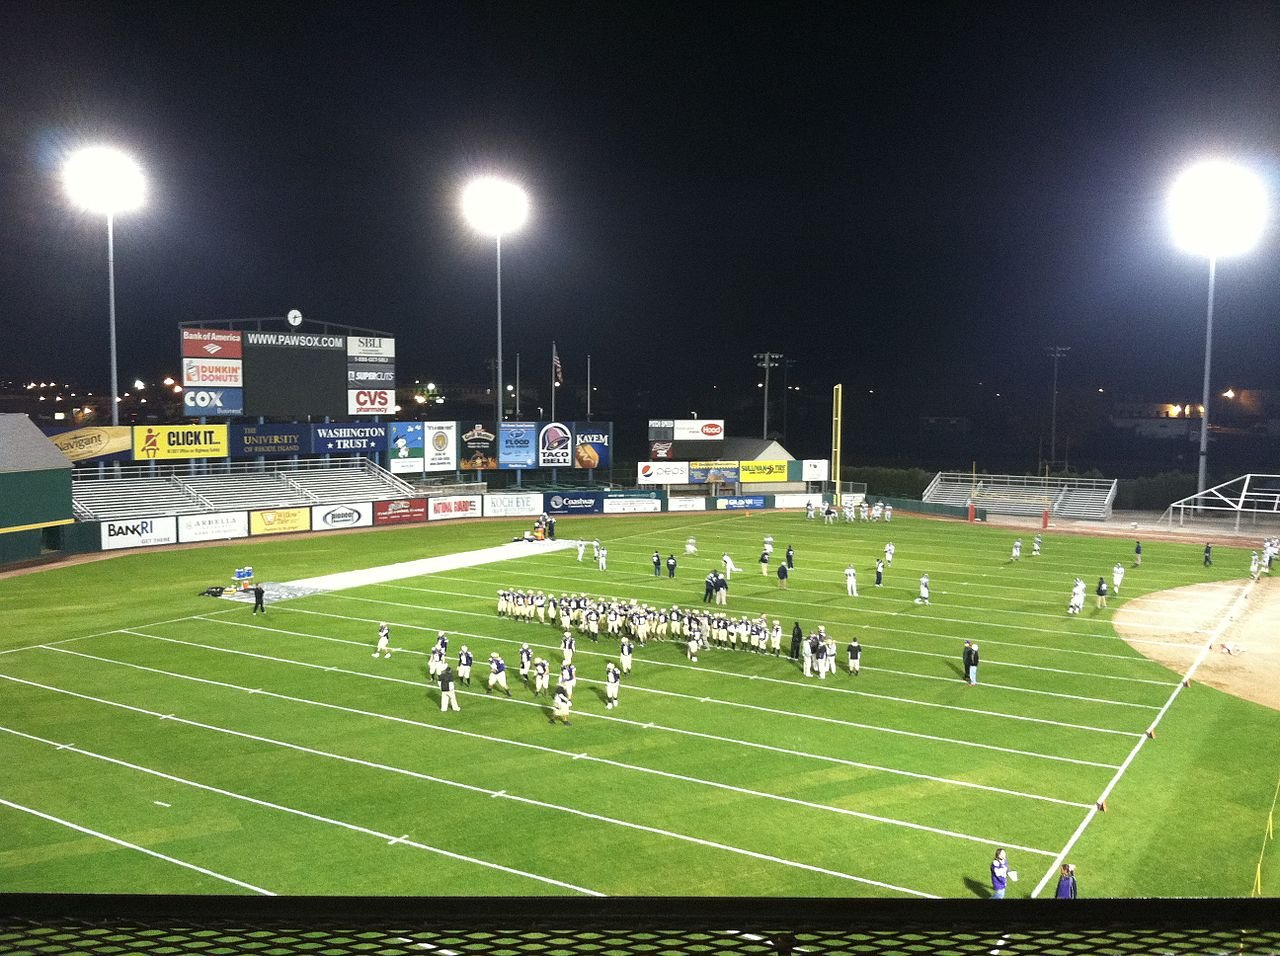 McCoy has also been known to host some high school football games.